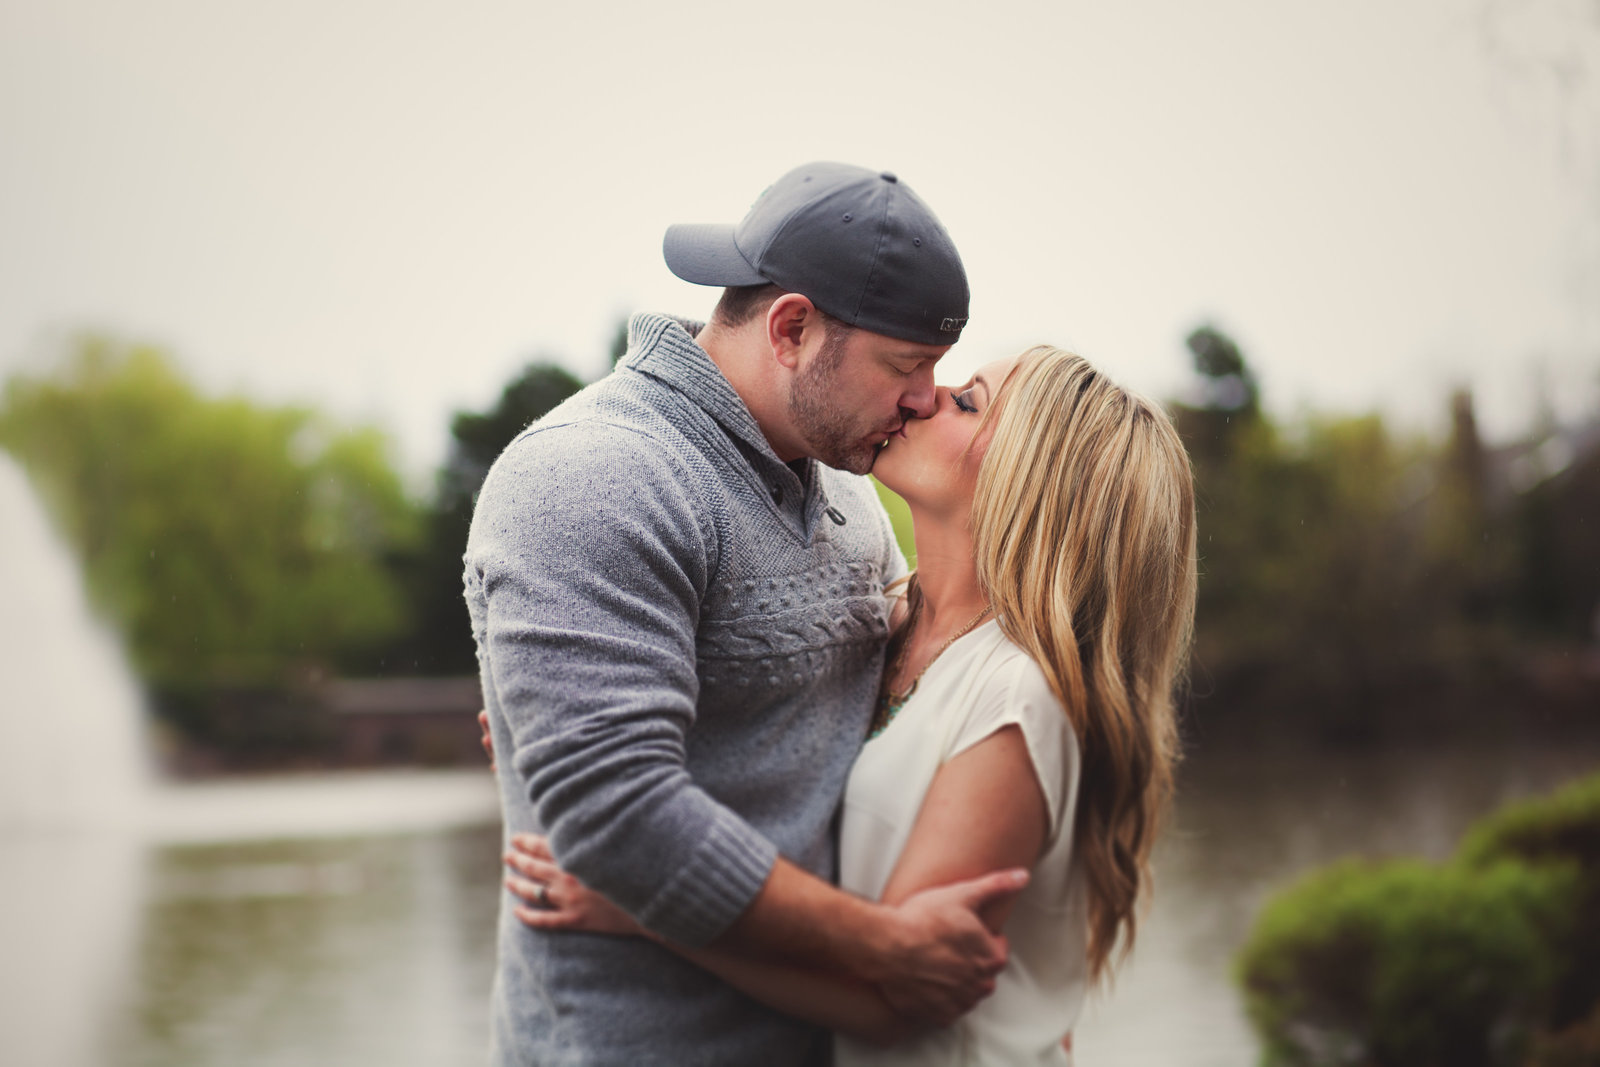 Beaverton Oregon outdoor engagement photo | Susie Moreno Photography